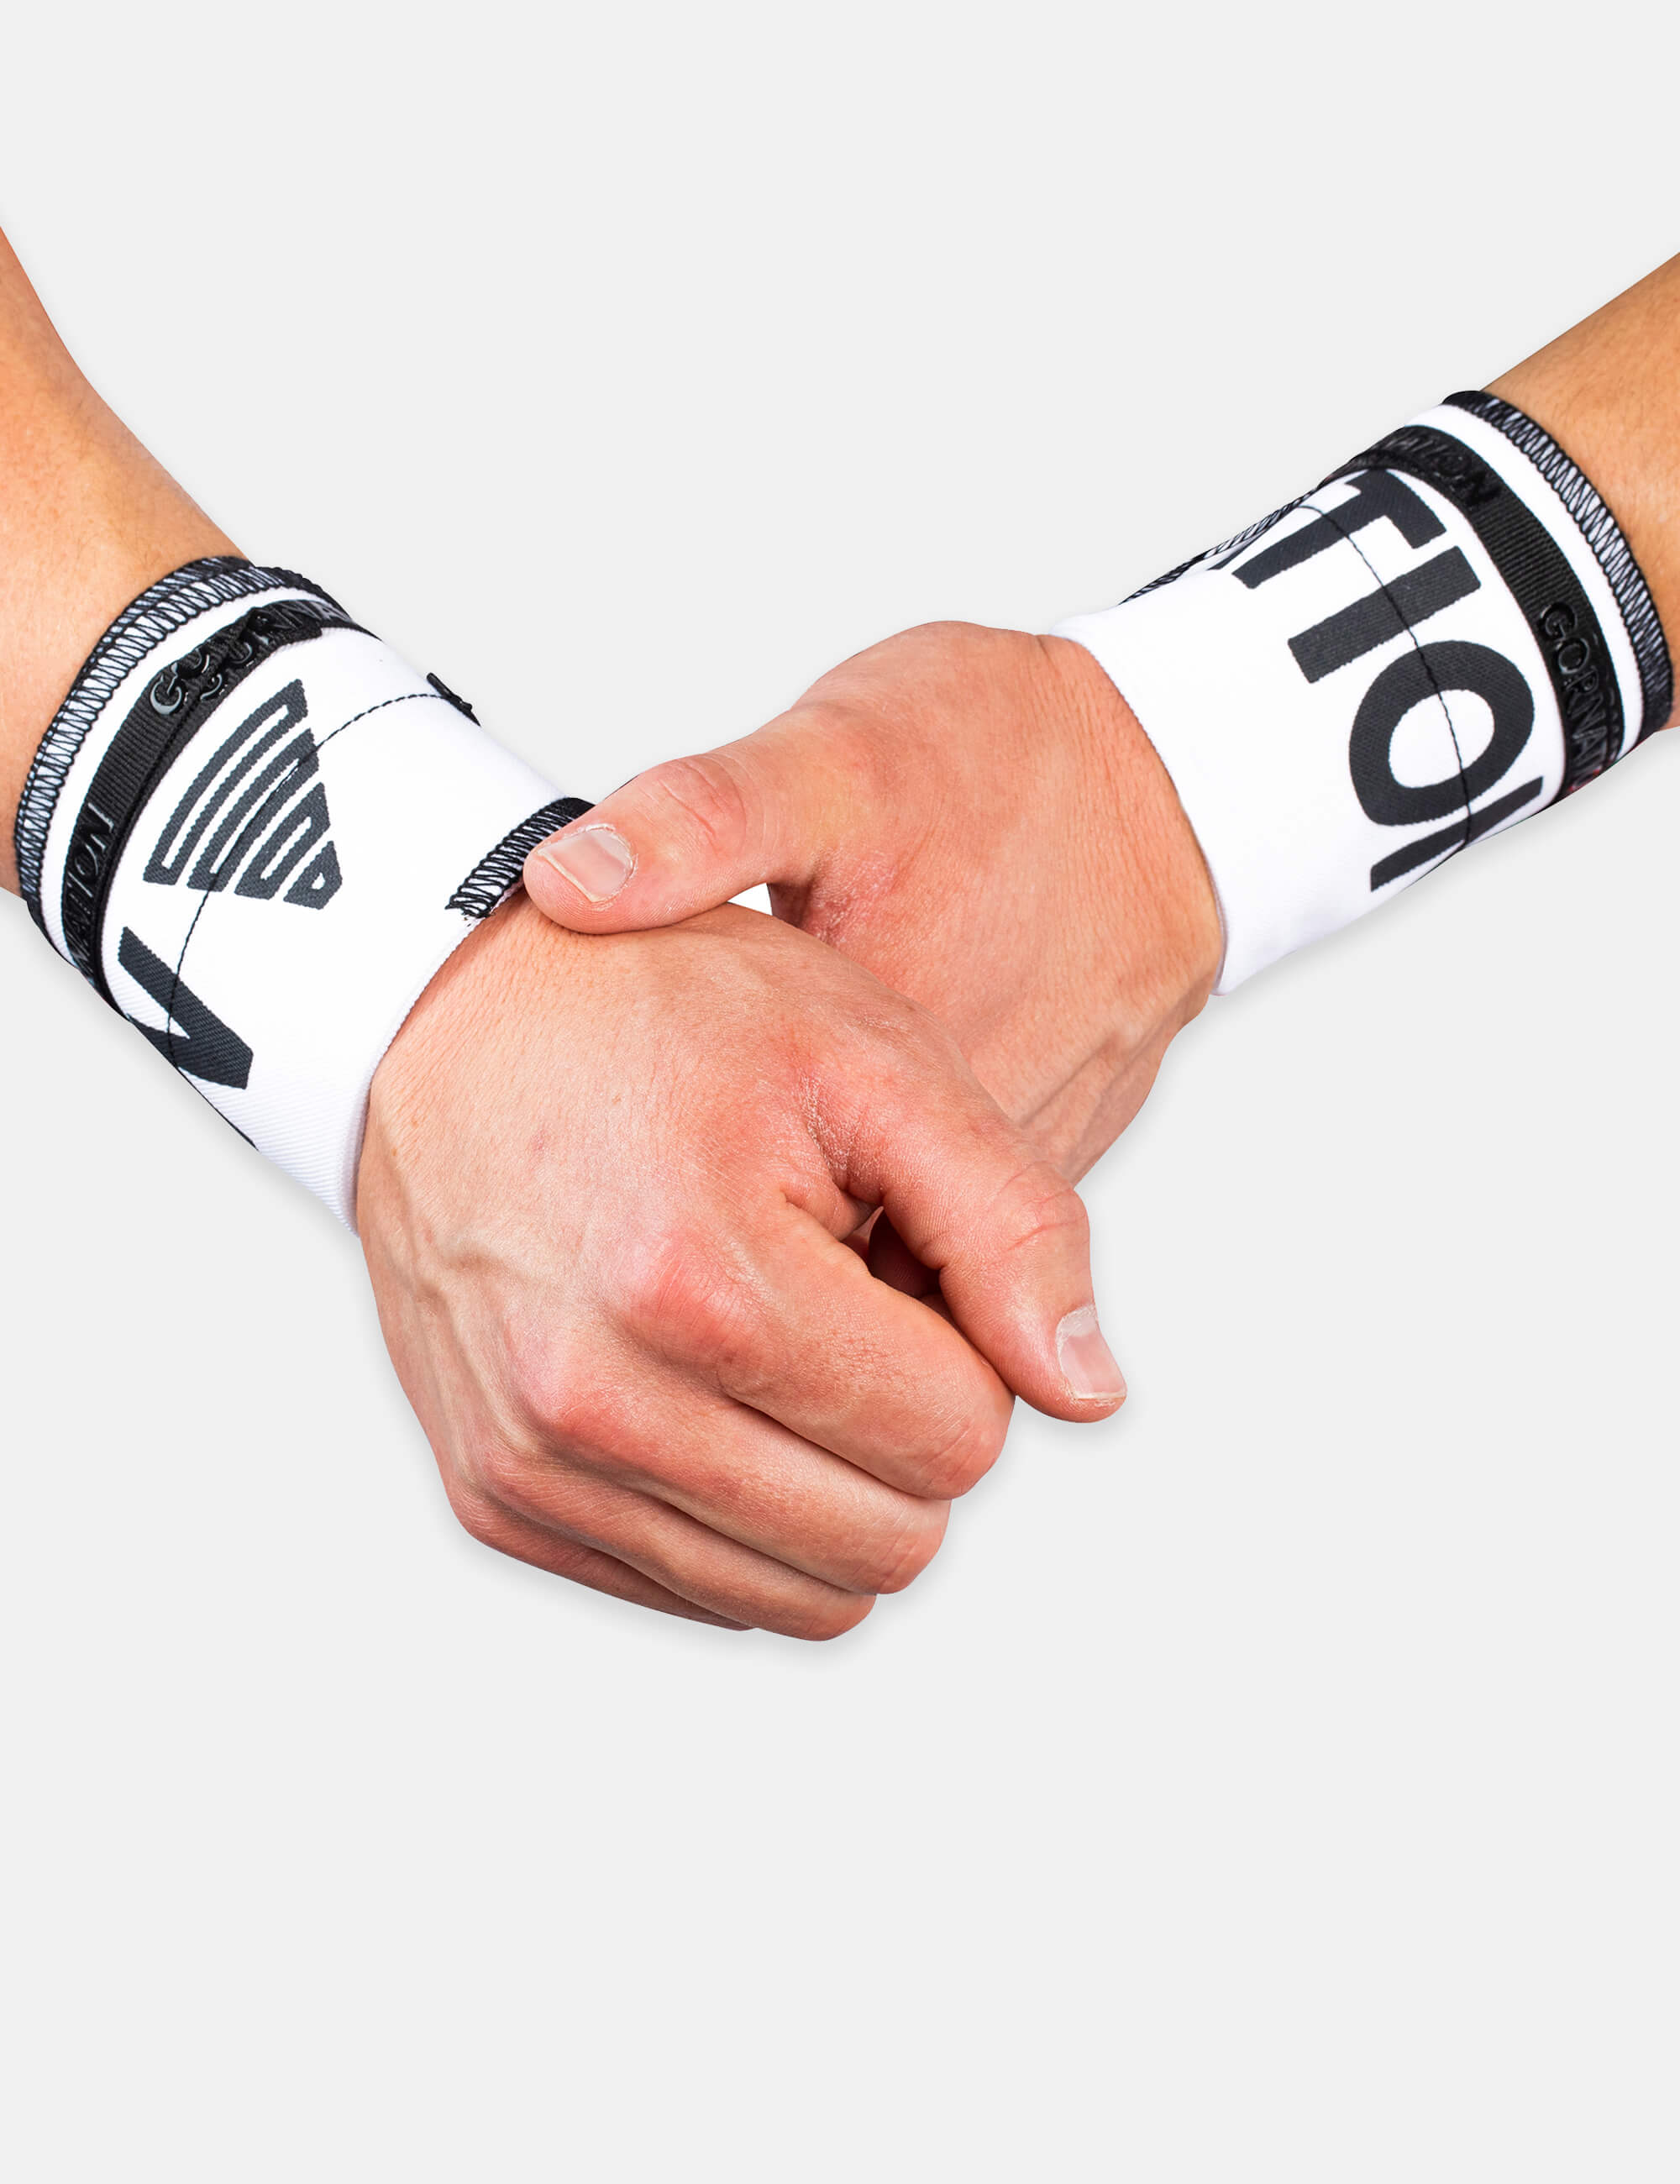 White Gornation Wrist wraps with tight fit, adjustable wristband for wrist support and injury prevention